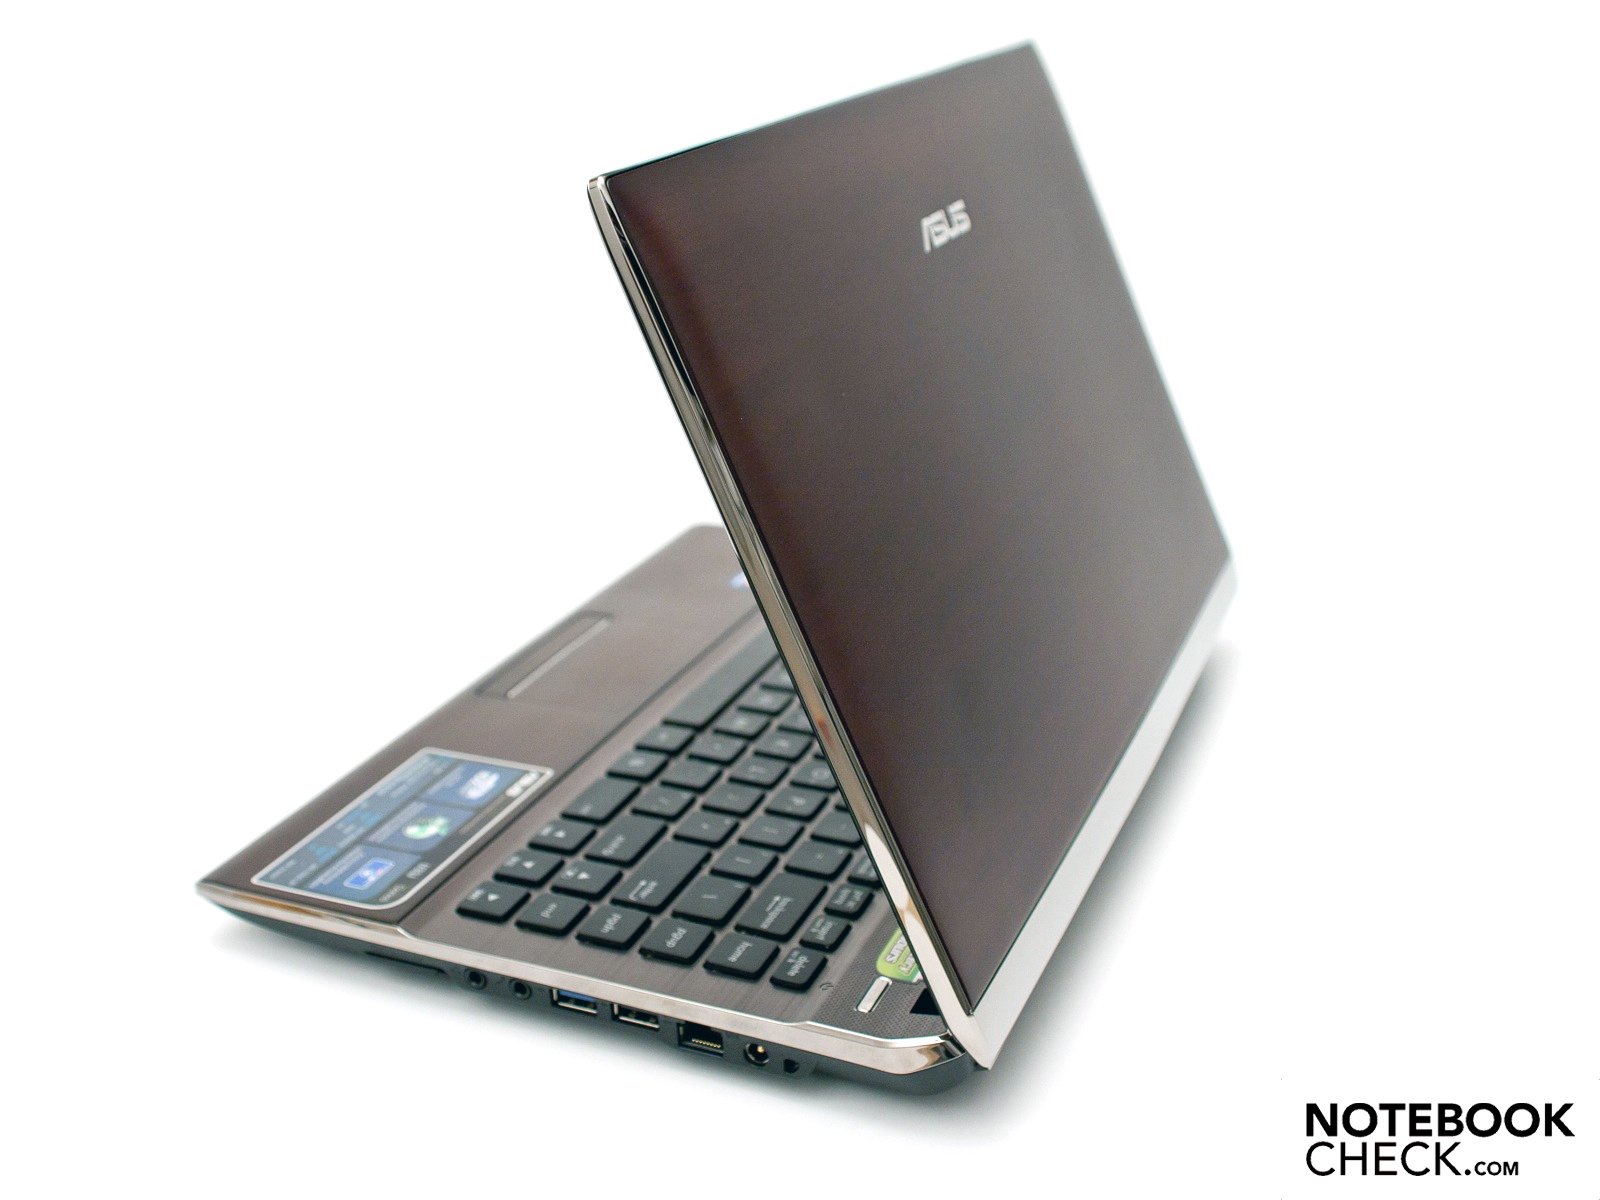 ASUS U33JC NOTEBOOK BLUETOOTH DRIVER FOR WINDOWS 7